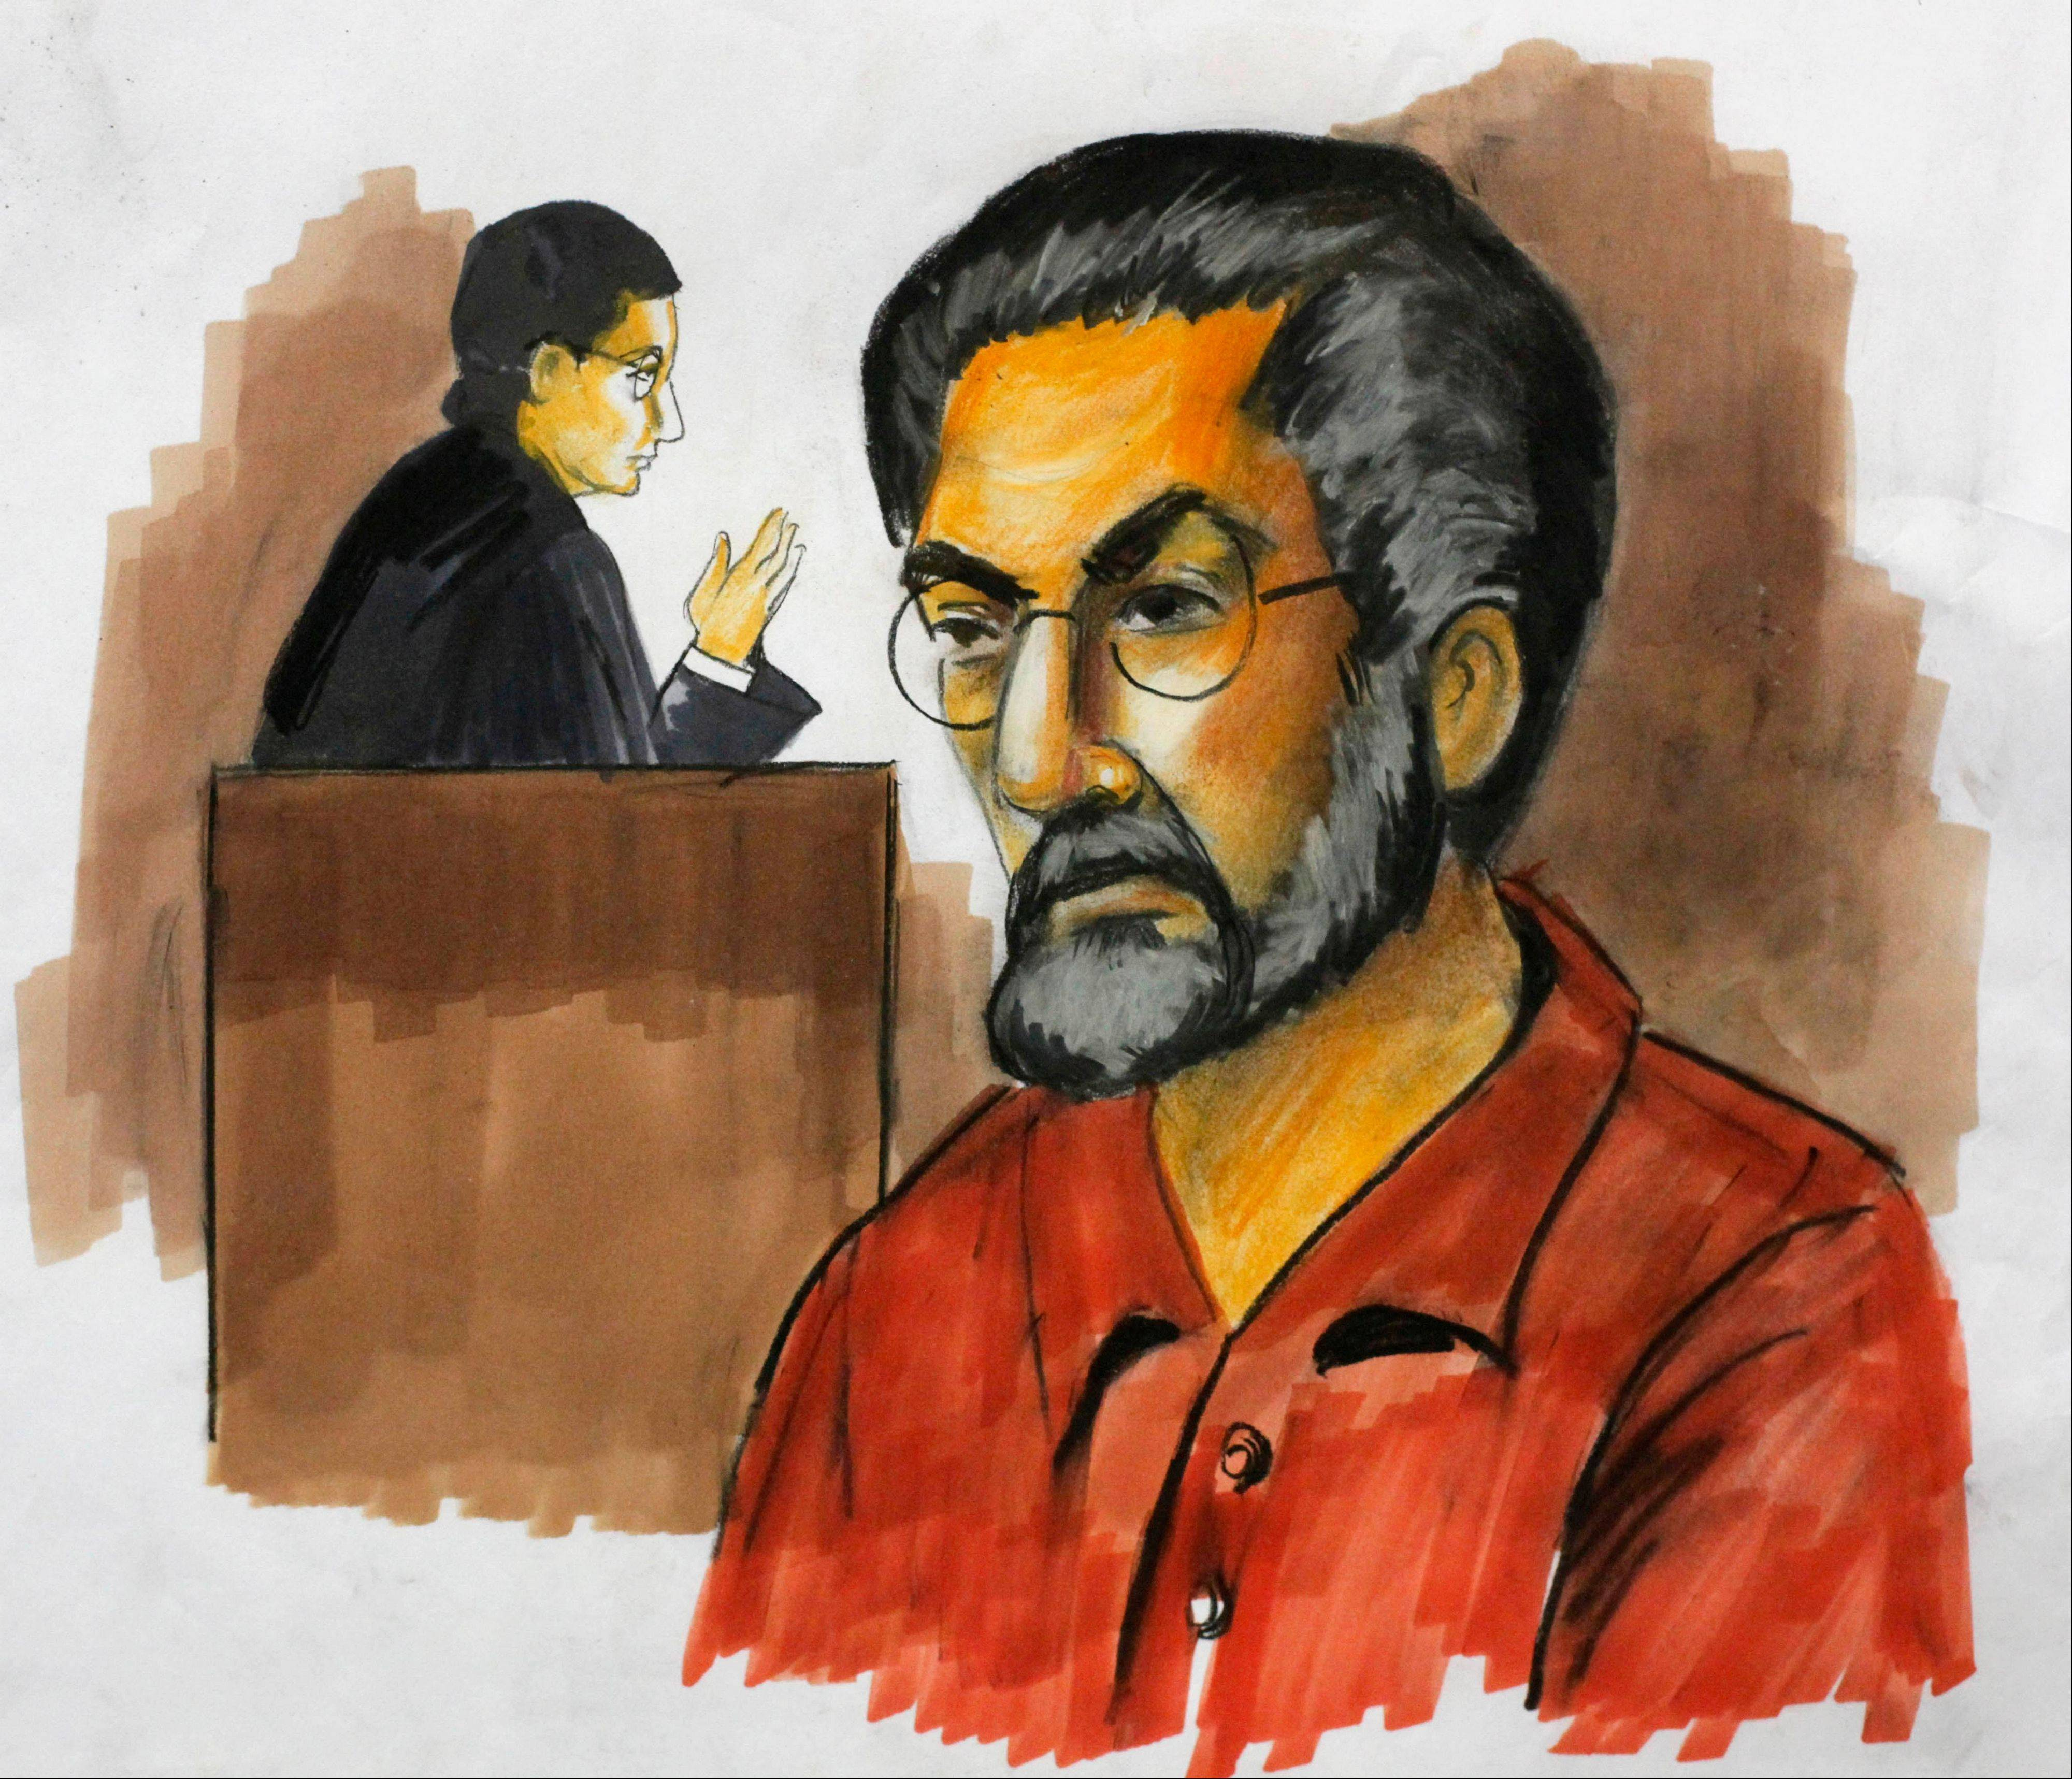 In this Dec. 2, 2009, courtroom sketch, Tahawwur Hussain Rana appears before federal Magistrate Judge Nan Nolan in Chicago. Rana was convicted in 2011 of providing material support to overseas terrorism, including a Pakistani group whose 2008 attacks in Mumbai, India, left more than 160 people dead.